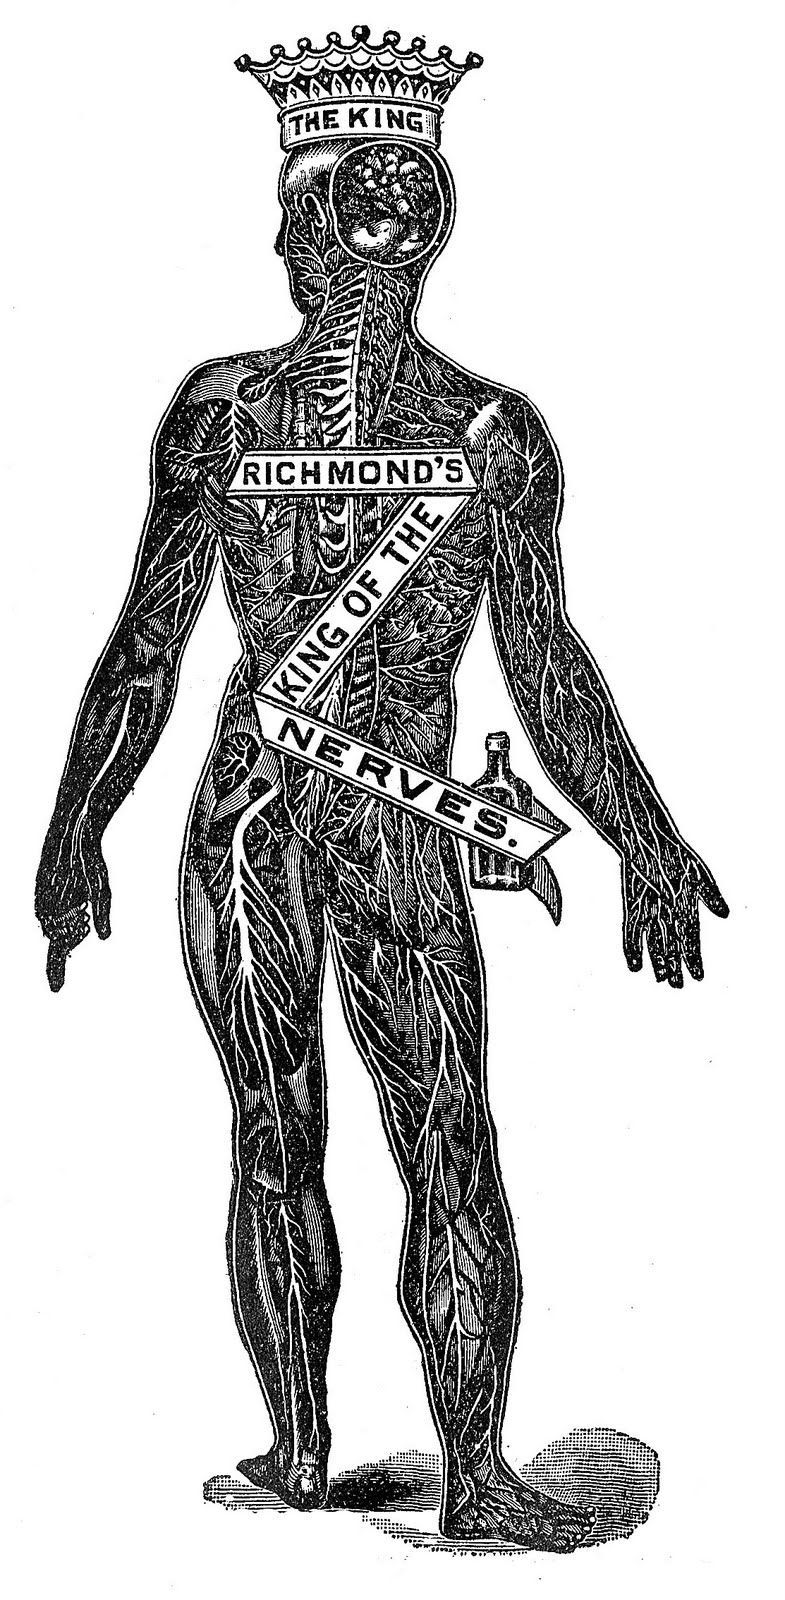 Strange Medical Advertising Image King Of The Nerves From The Late